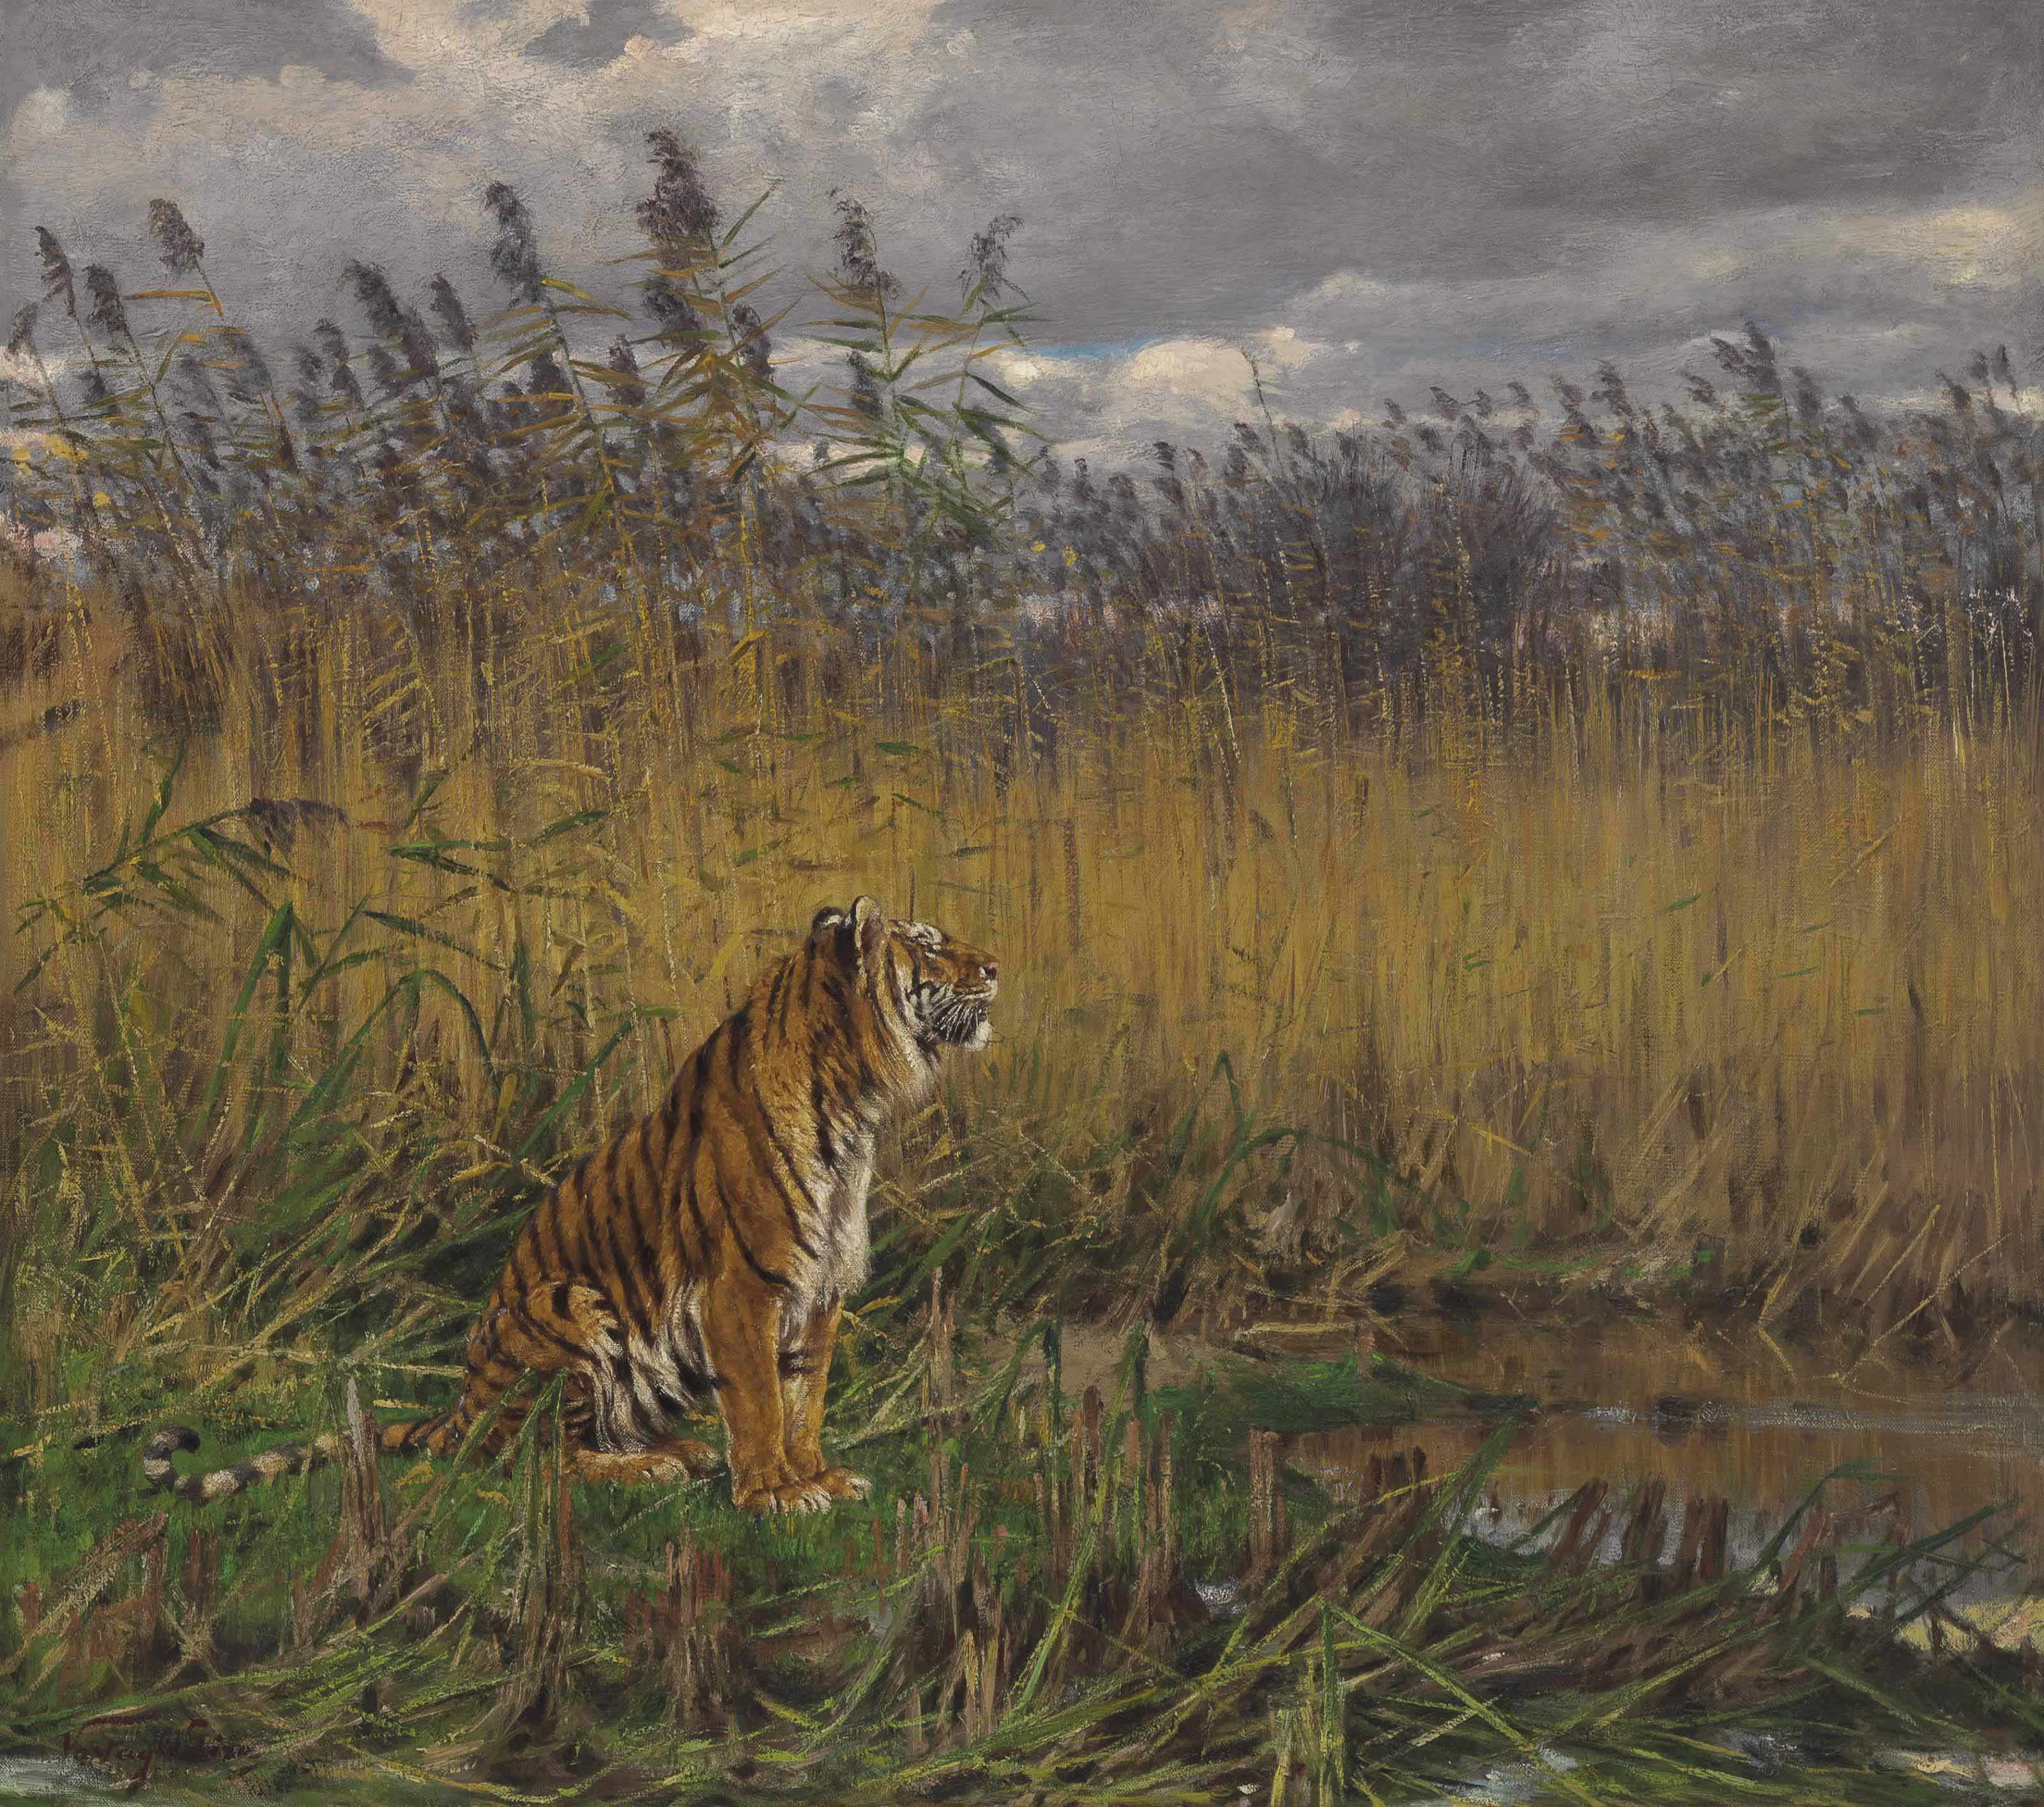 A Tiger in a Landscape